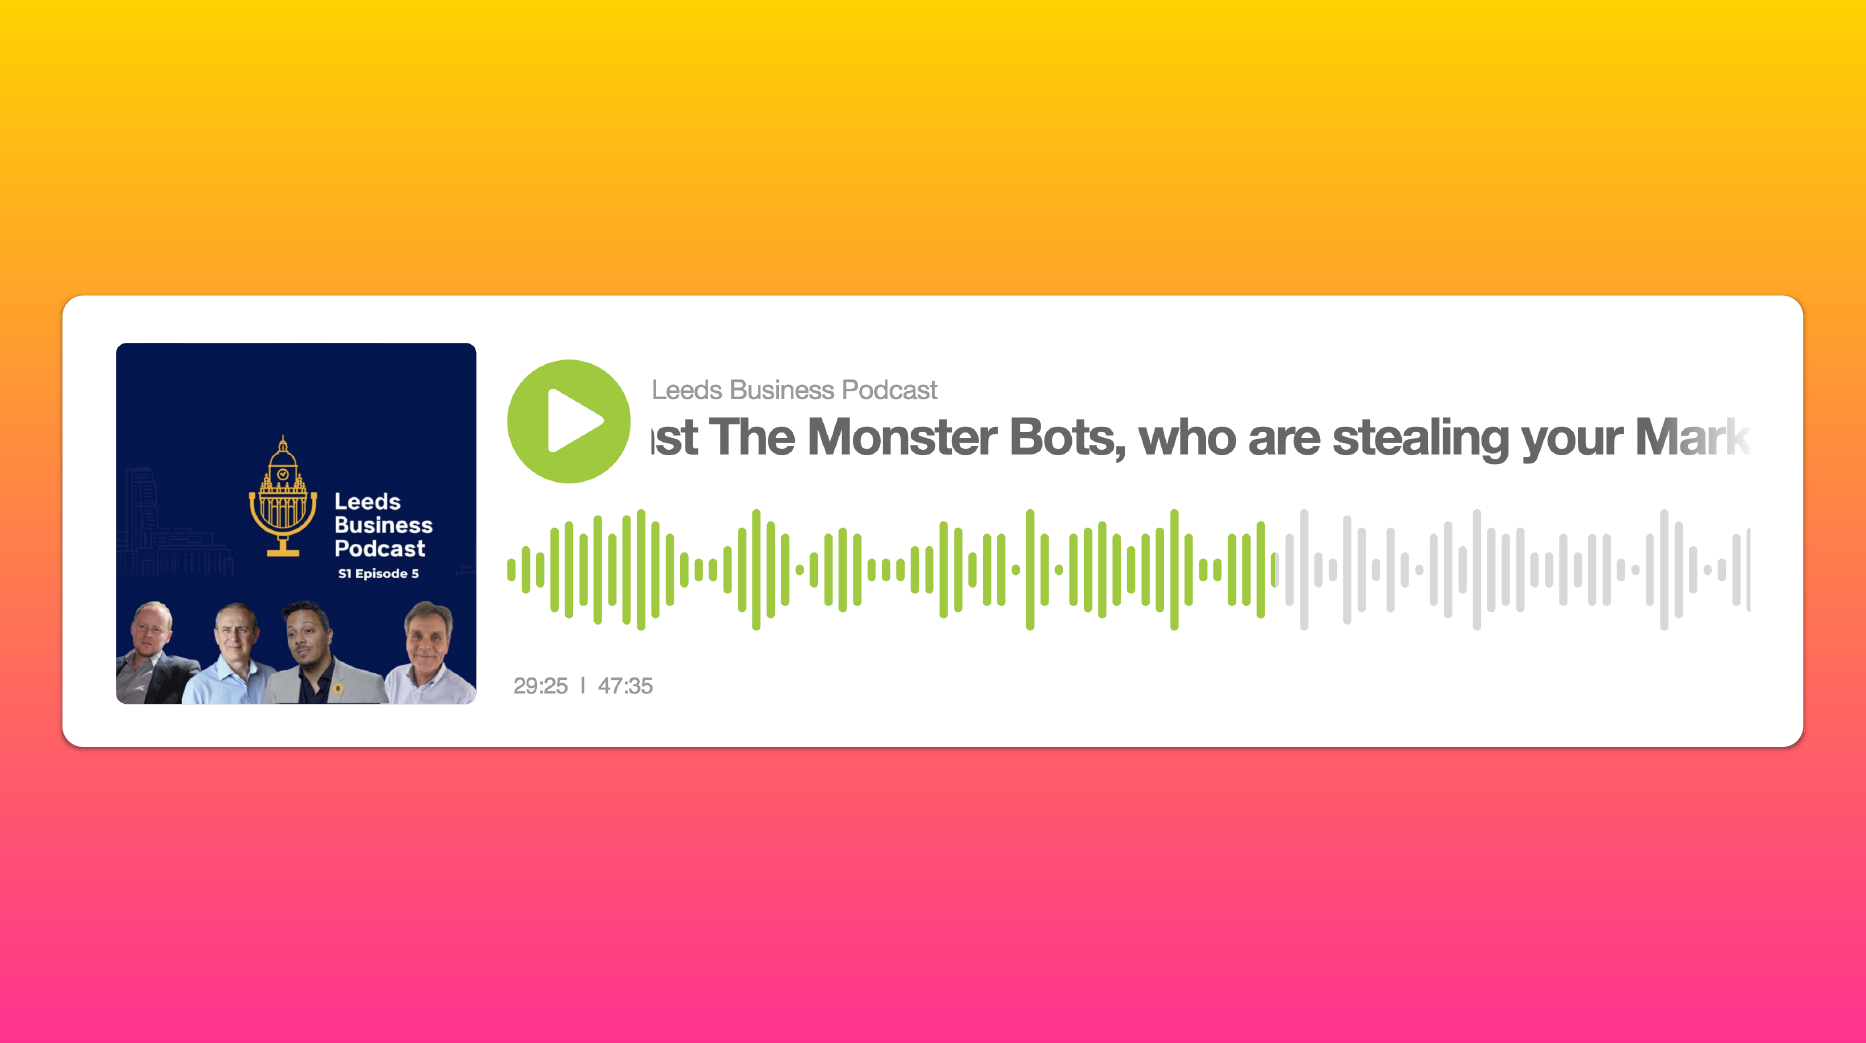 The Battle Against The Monster Bots Podcast